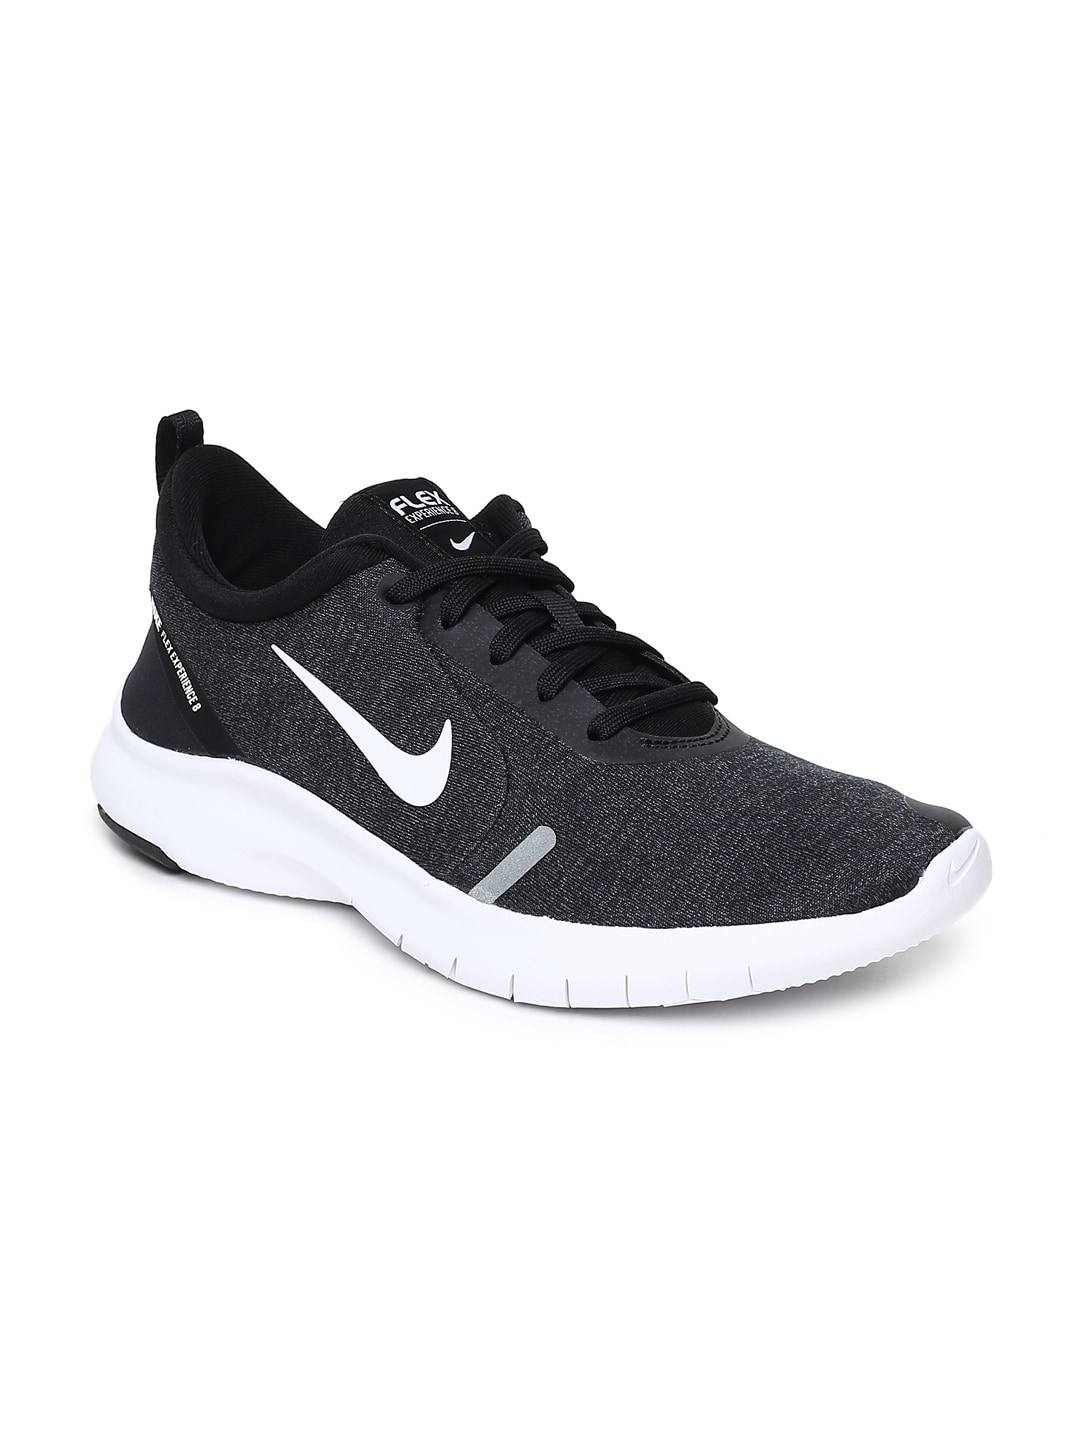 da3a4d2dfffe3 Nike Sport Shoe - Buy Nike Sport Shoes At Best Price Online